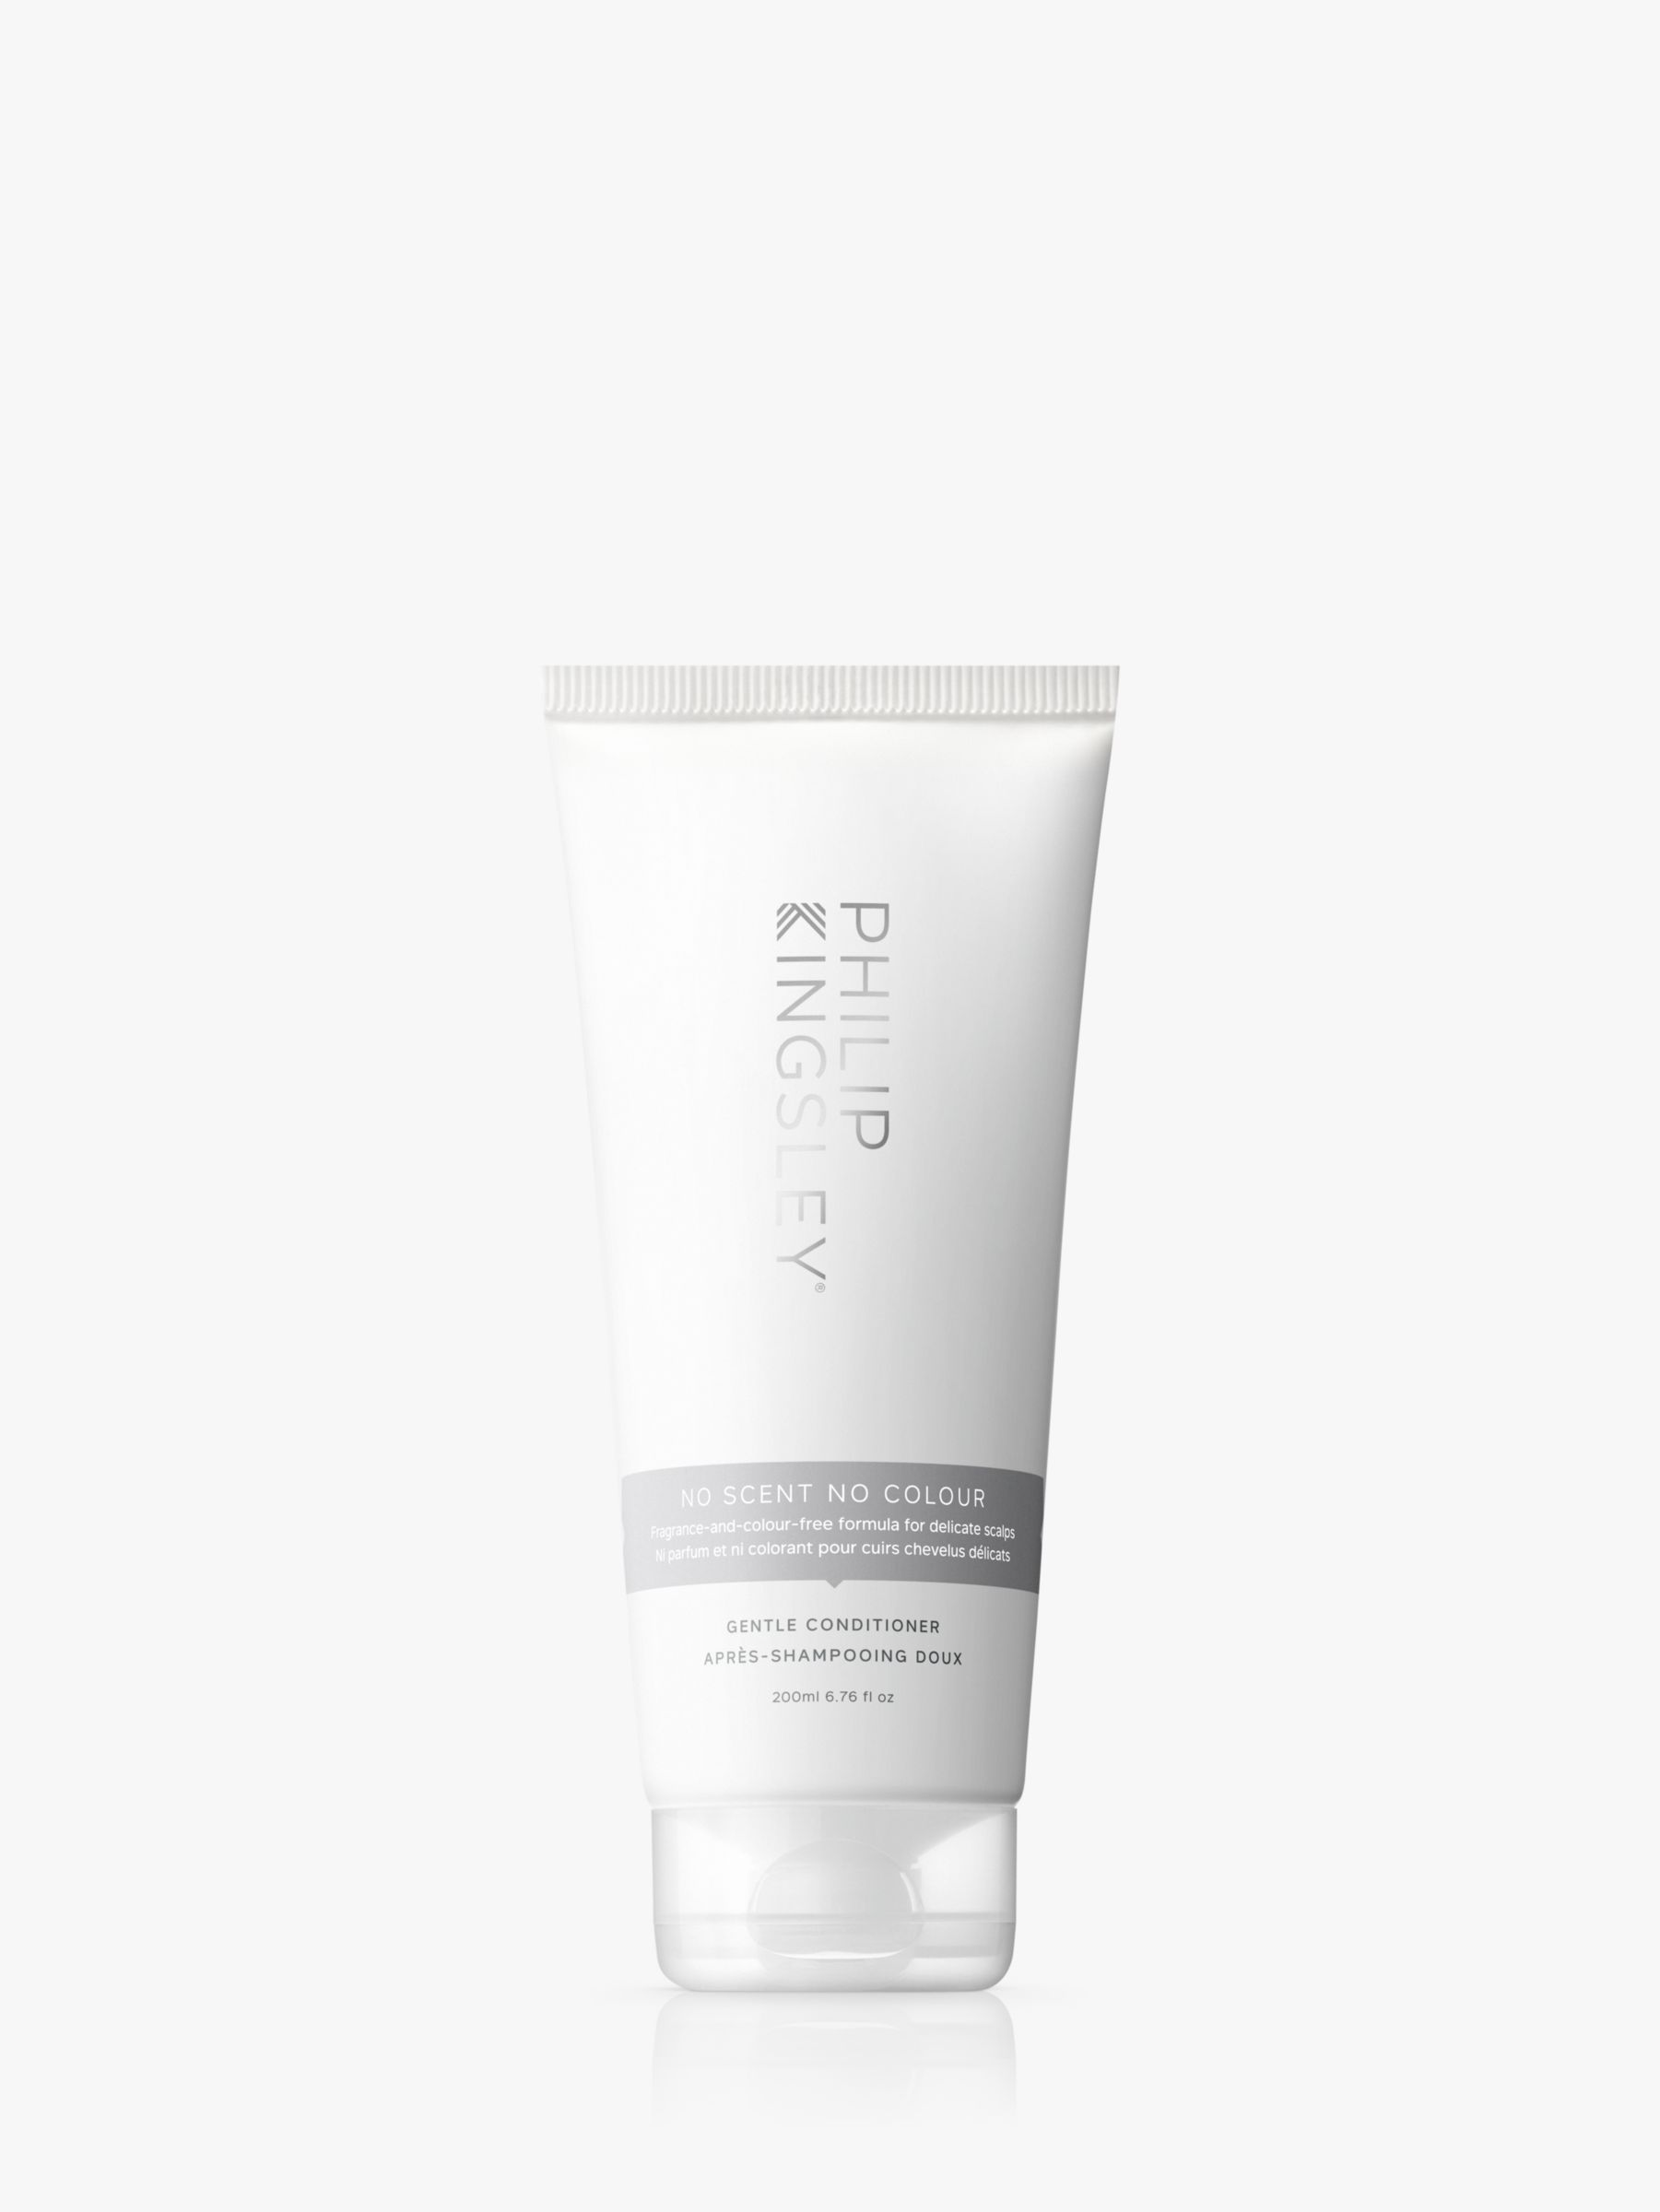 Philip Kingsley Philip Kingsley No Scent No Colour Gentle Conditioner, 200ml